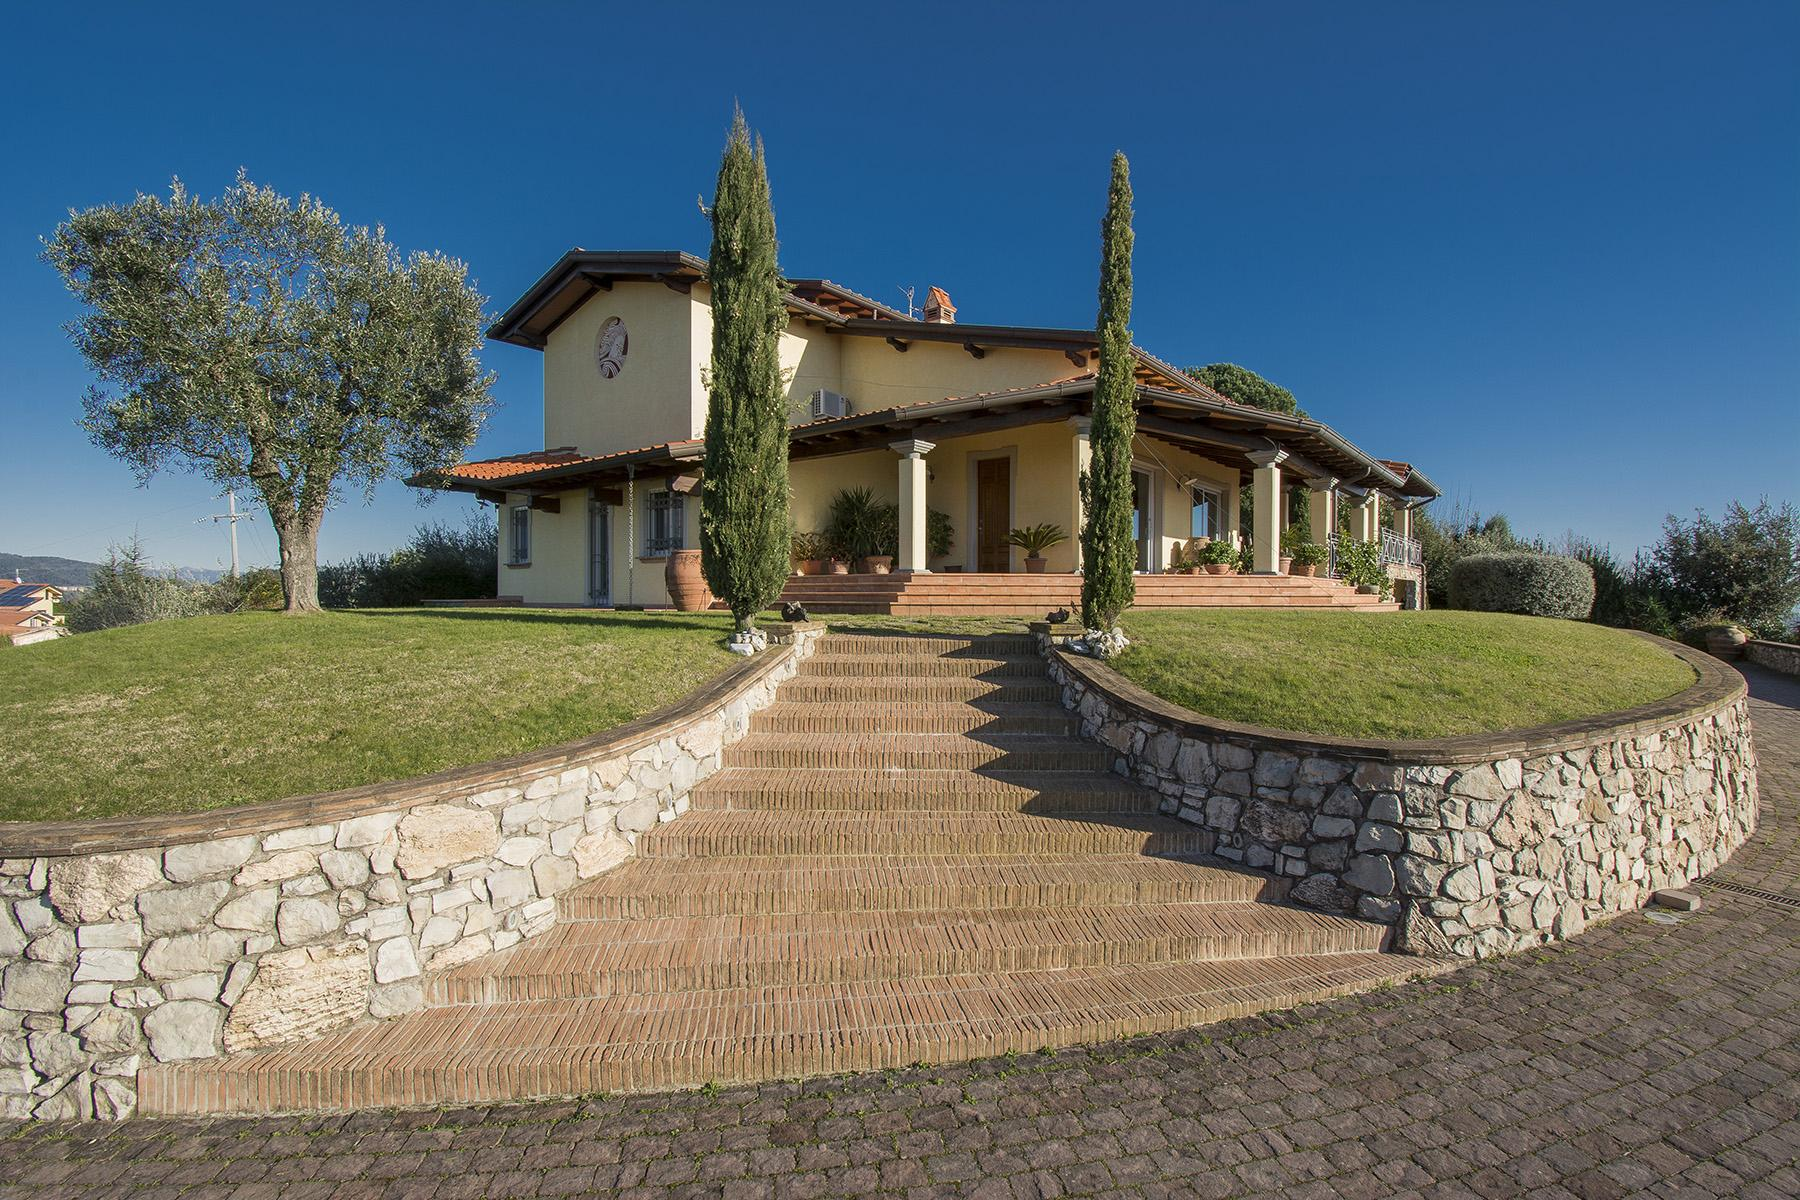 Hilltop sea-view villa overlooking the Versilia coastline and lake Massaciuccoli - 1